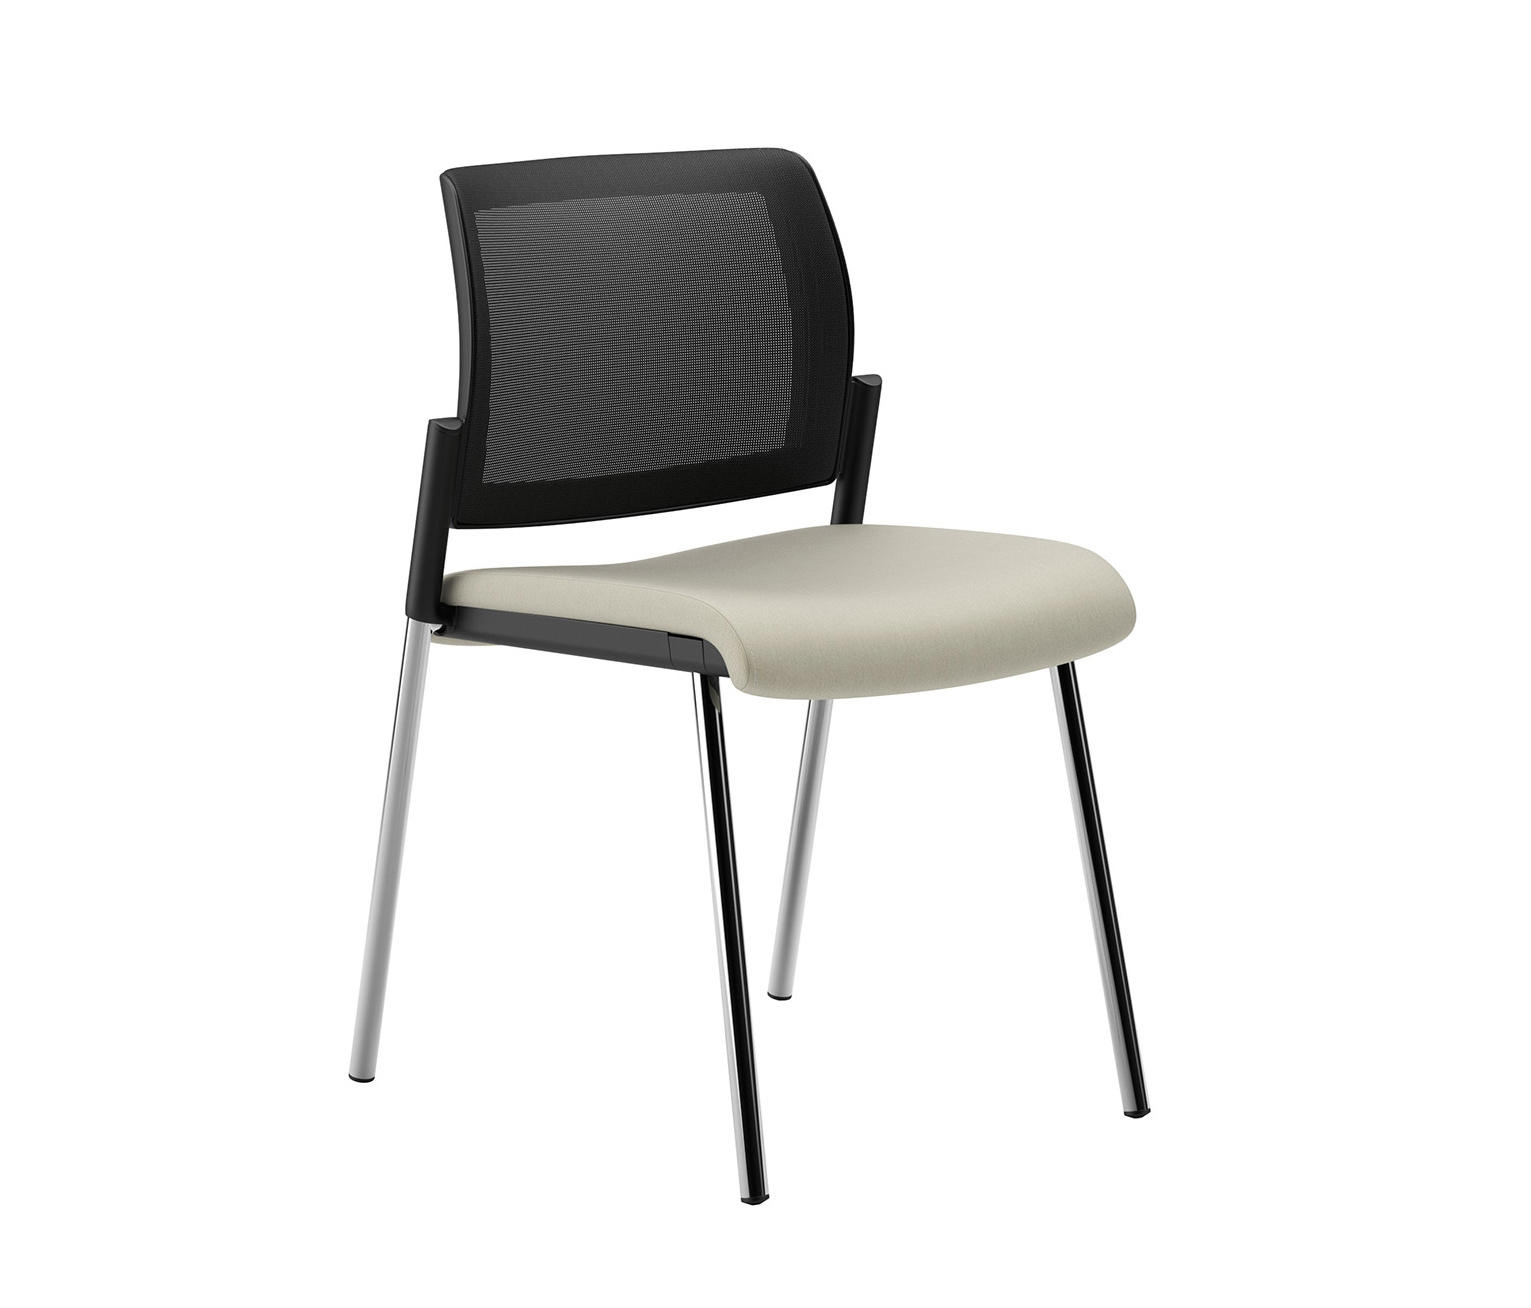 Office Furniture Guest Chairs lavoro guest chair with mesh back - visitors chairs / side chairs